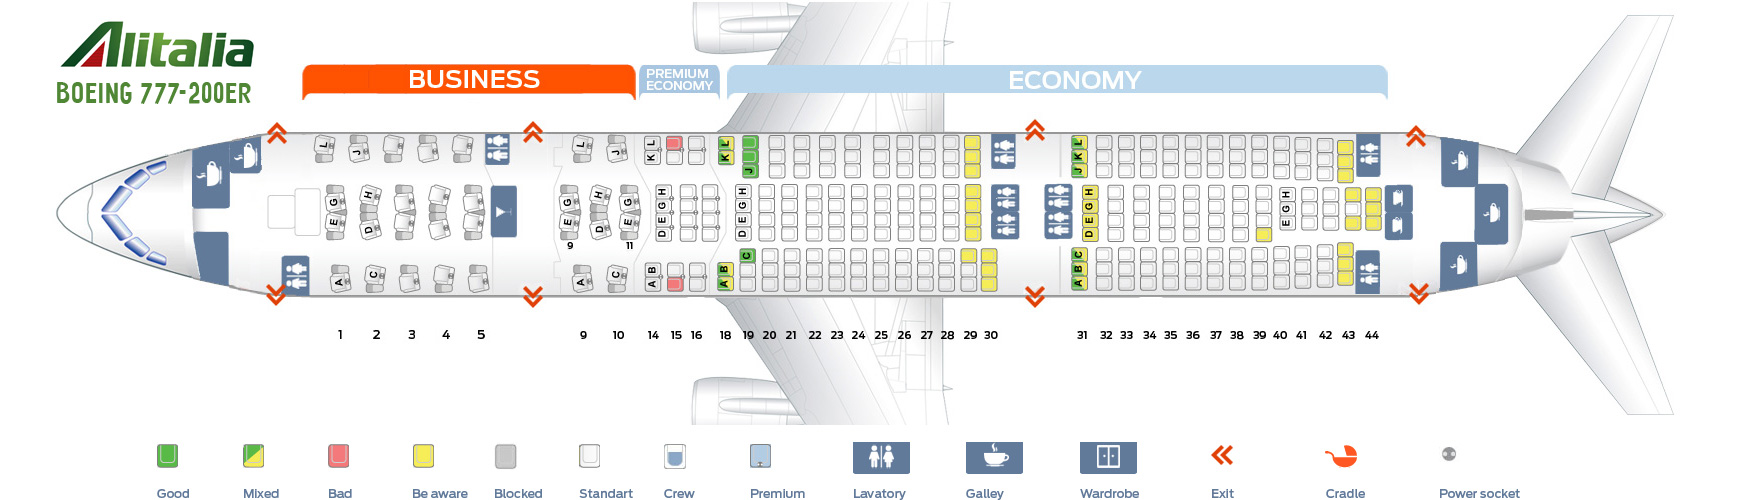 Seat Map Boeing 777-200ER Alitalia Airlines